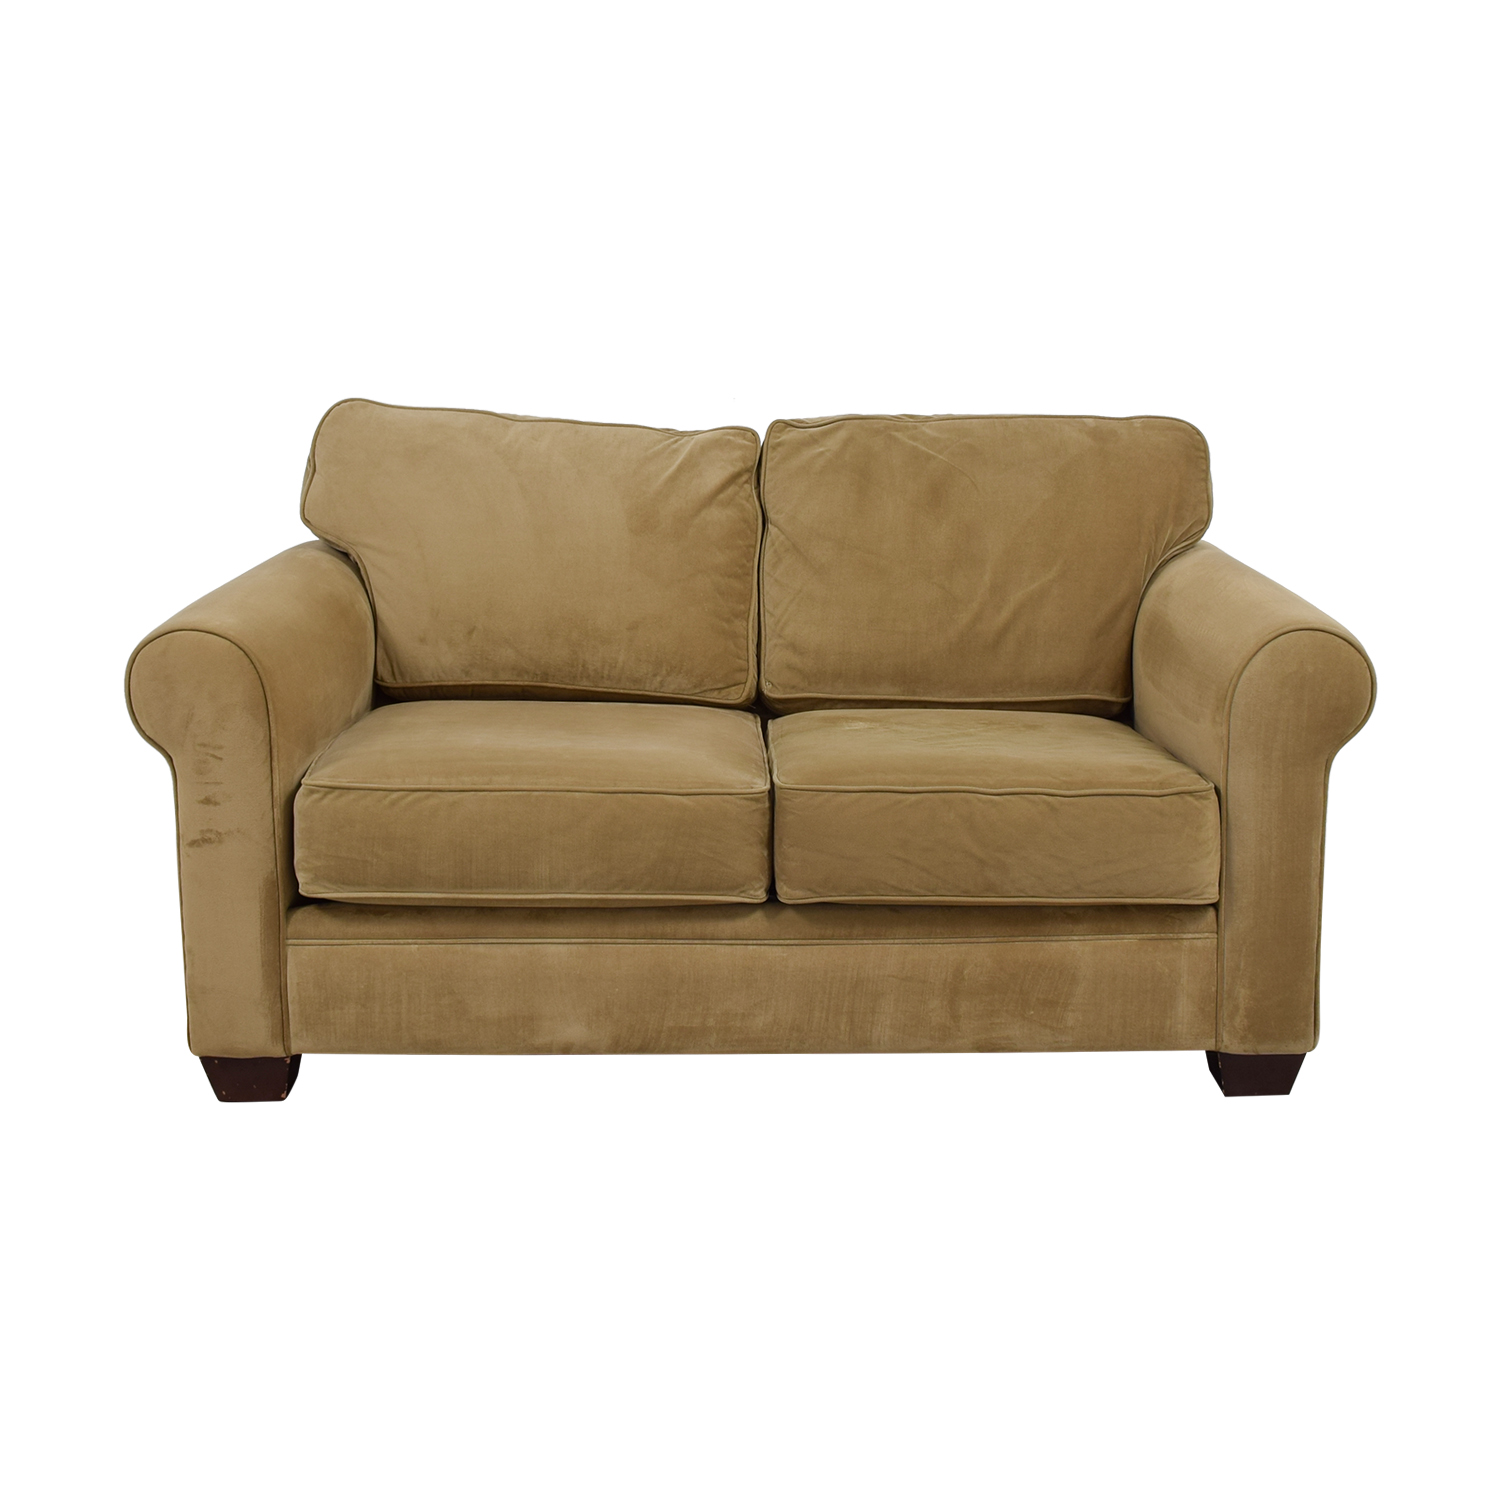 buy Macy's Tan Two-Cushion Loveseat Macy's Loveseats